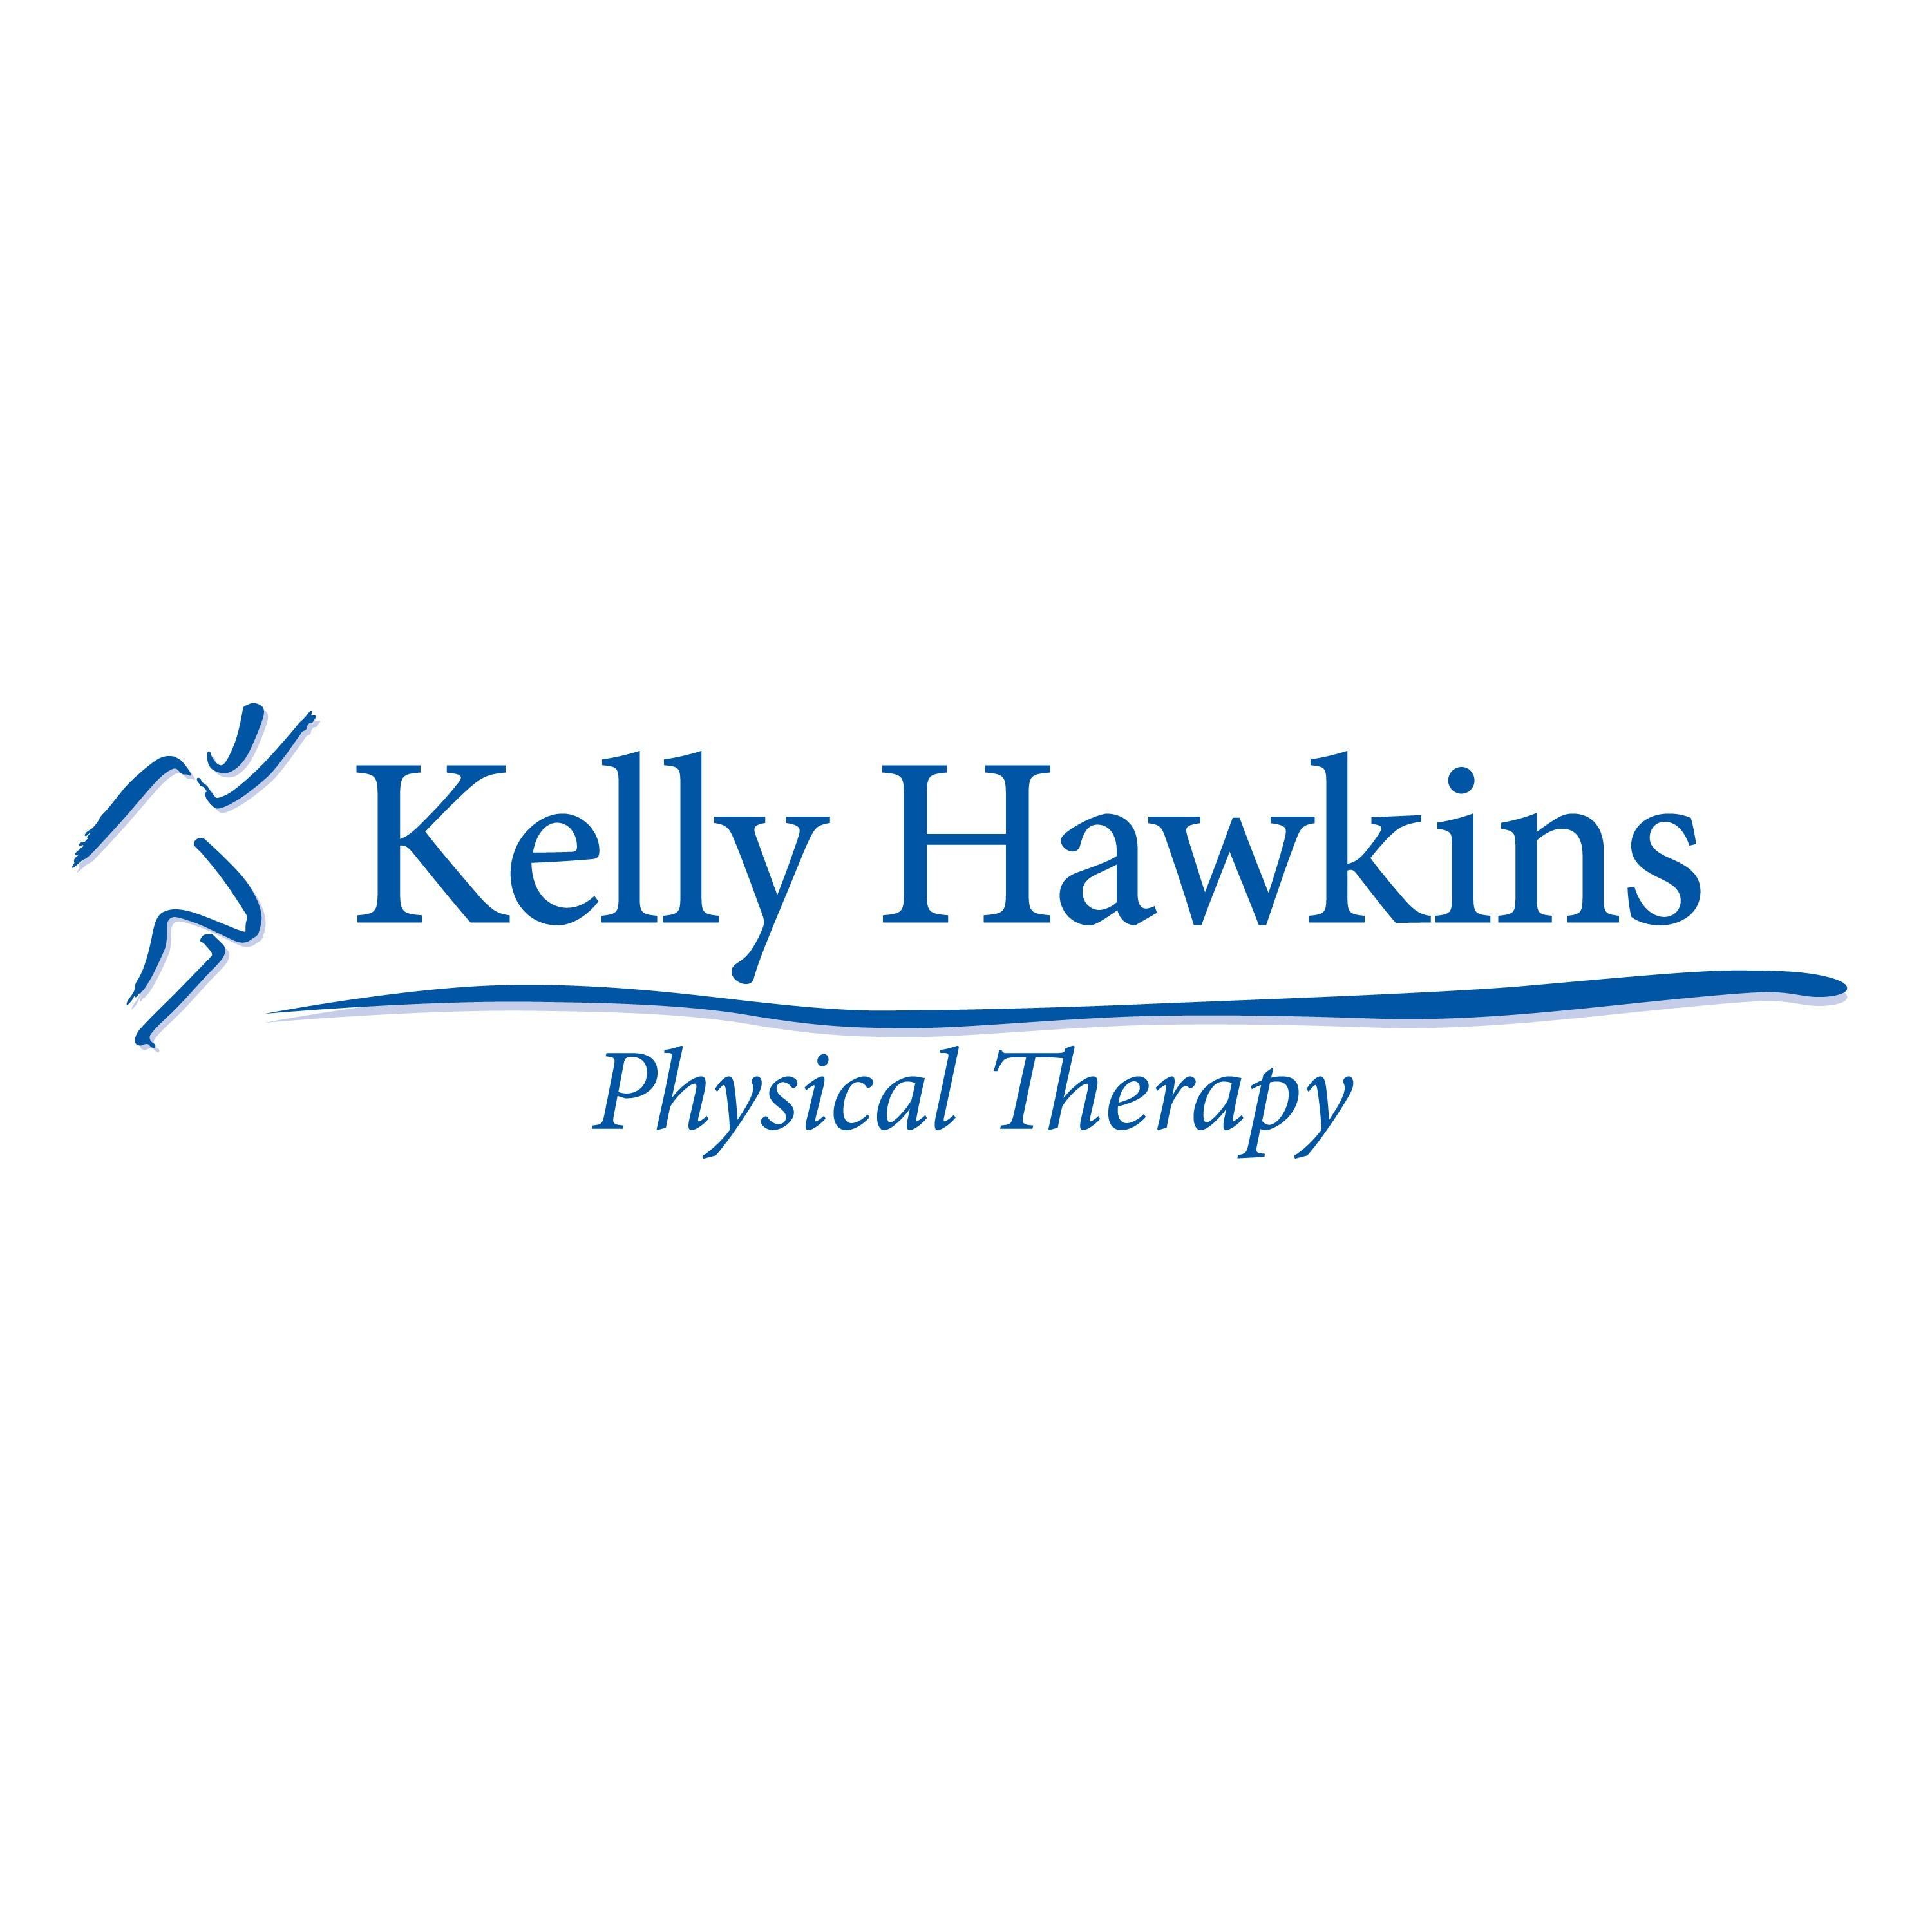 Kelly Hawkins Physical Therapy - Las Vegas, NV - Physical Therapy & Rehab